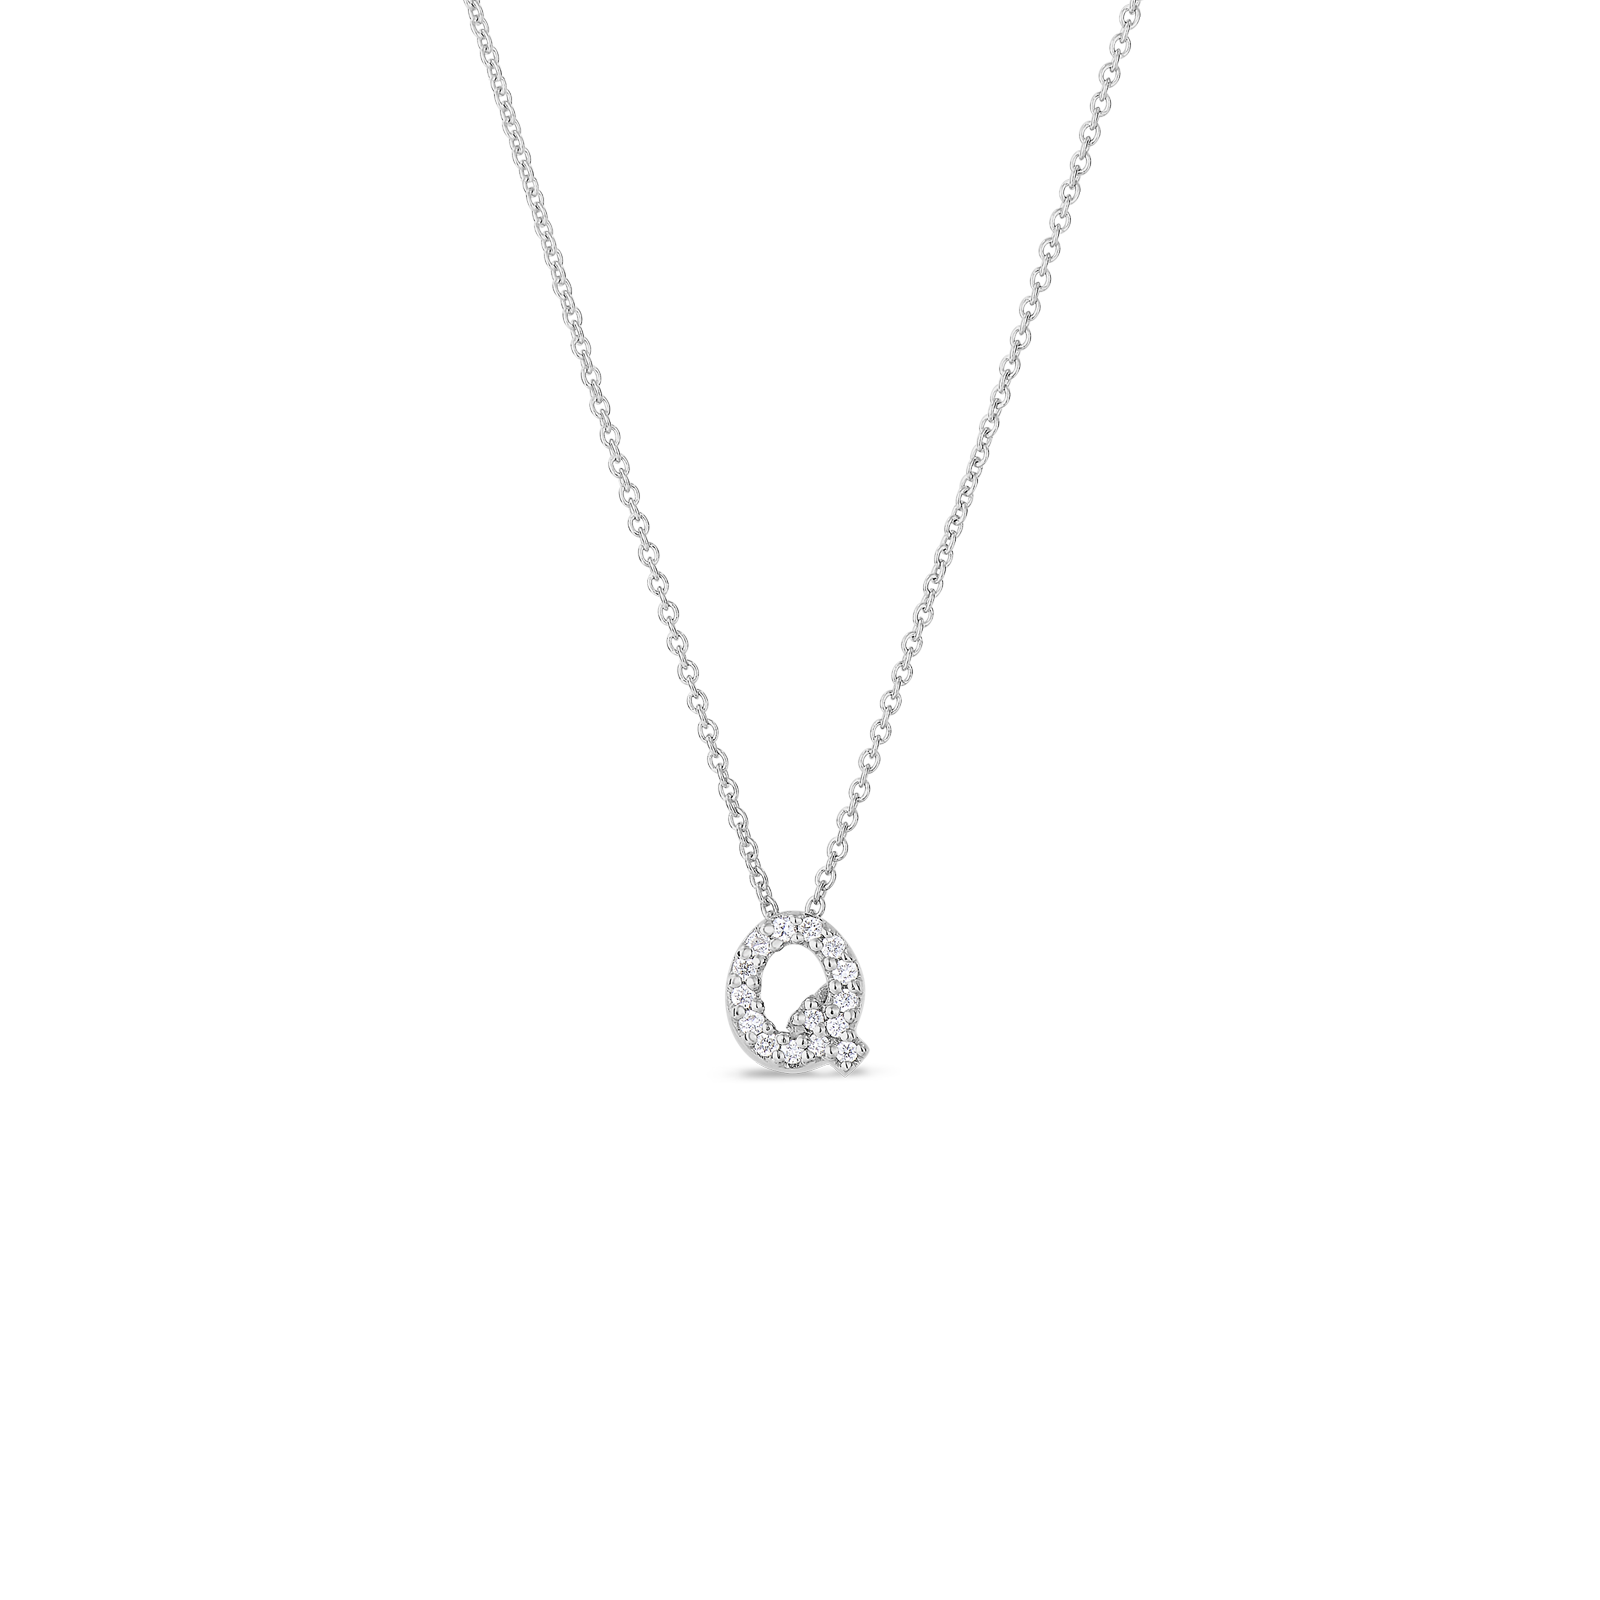 gifts love letter q pendant with diamonds roberto coin